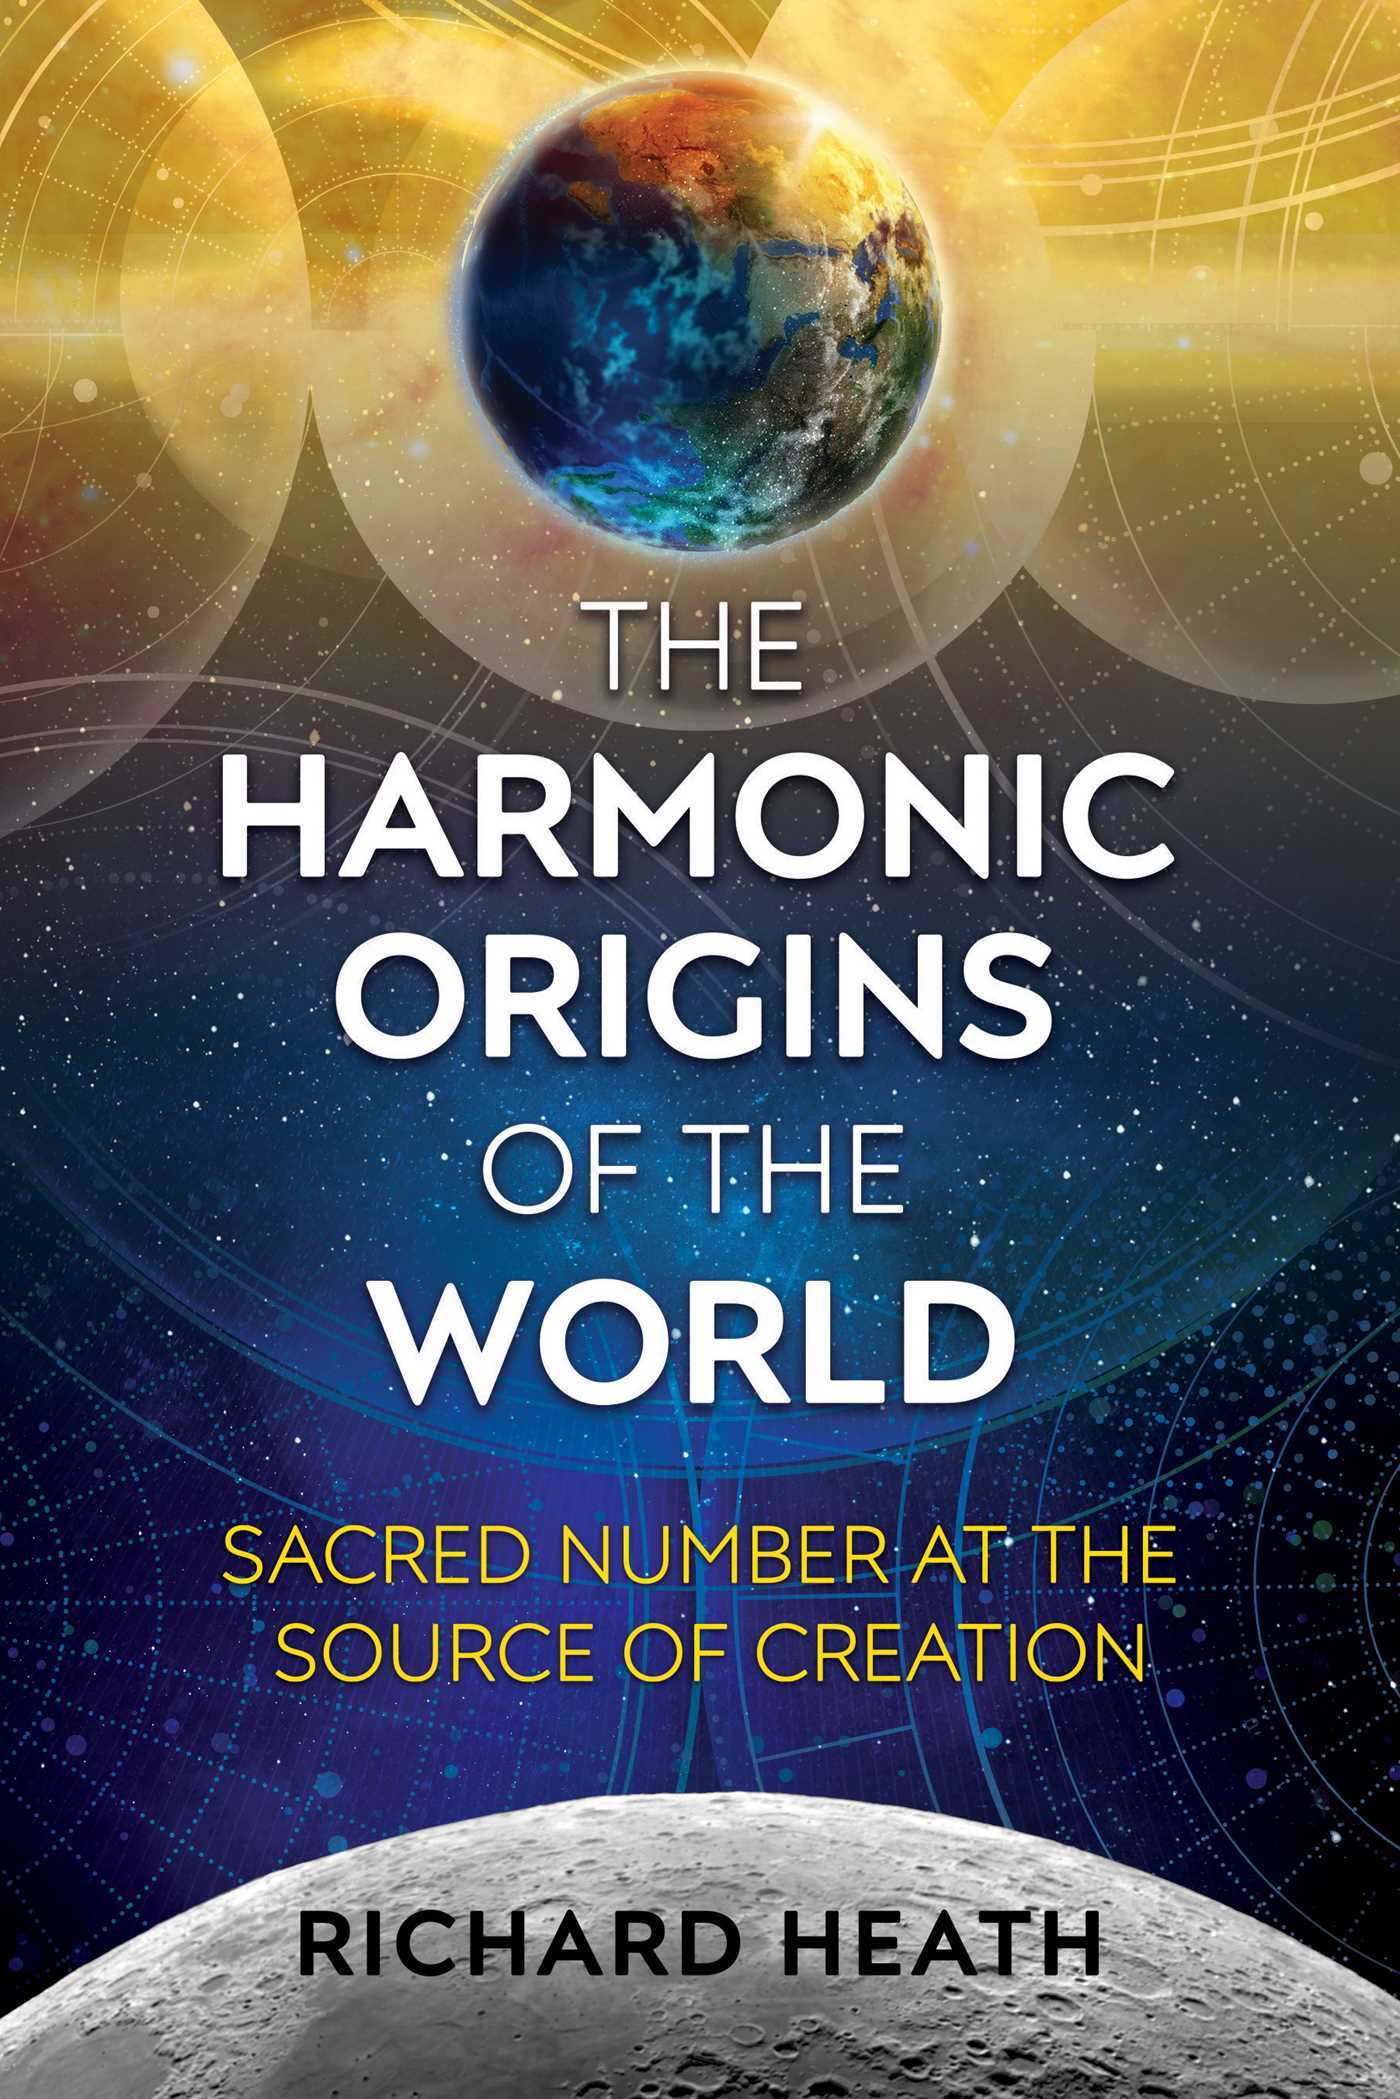 The Harmonic Origins of the World Sacred Number at the Source of Creation